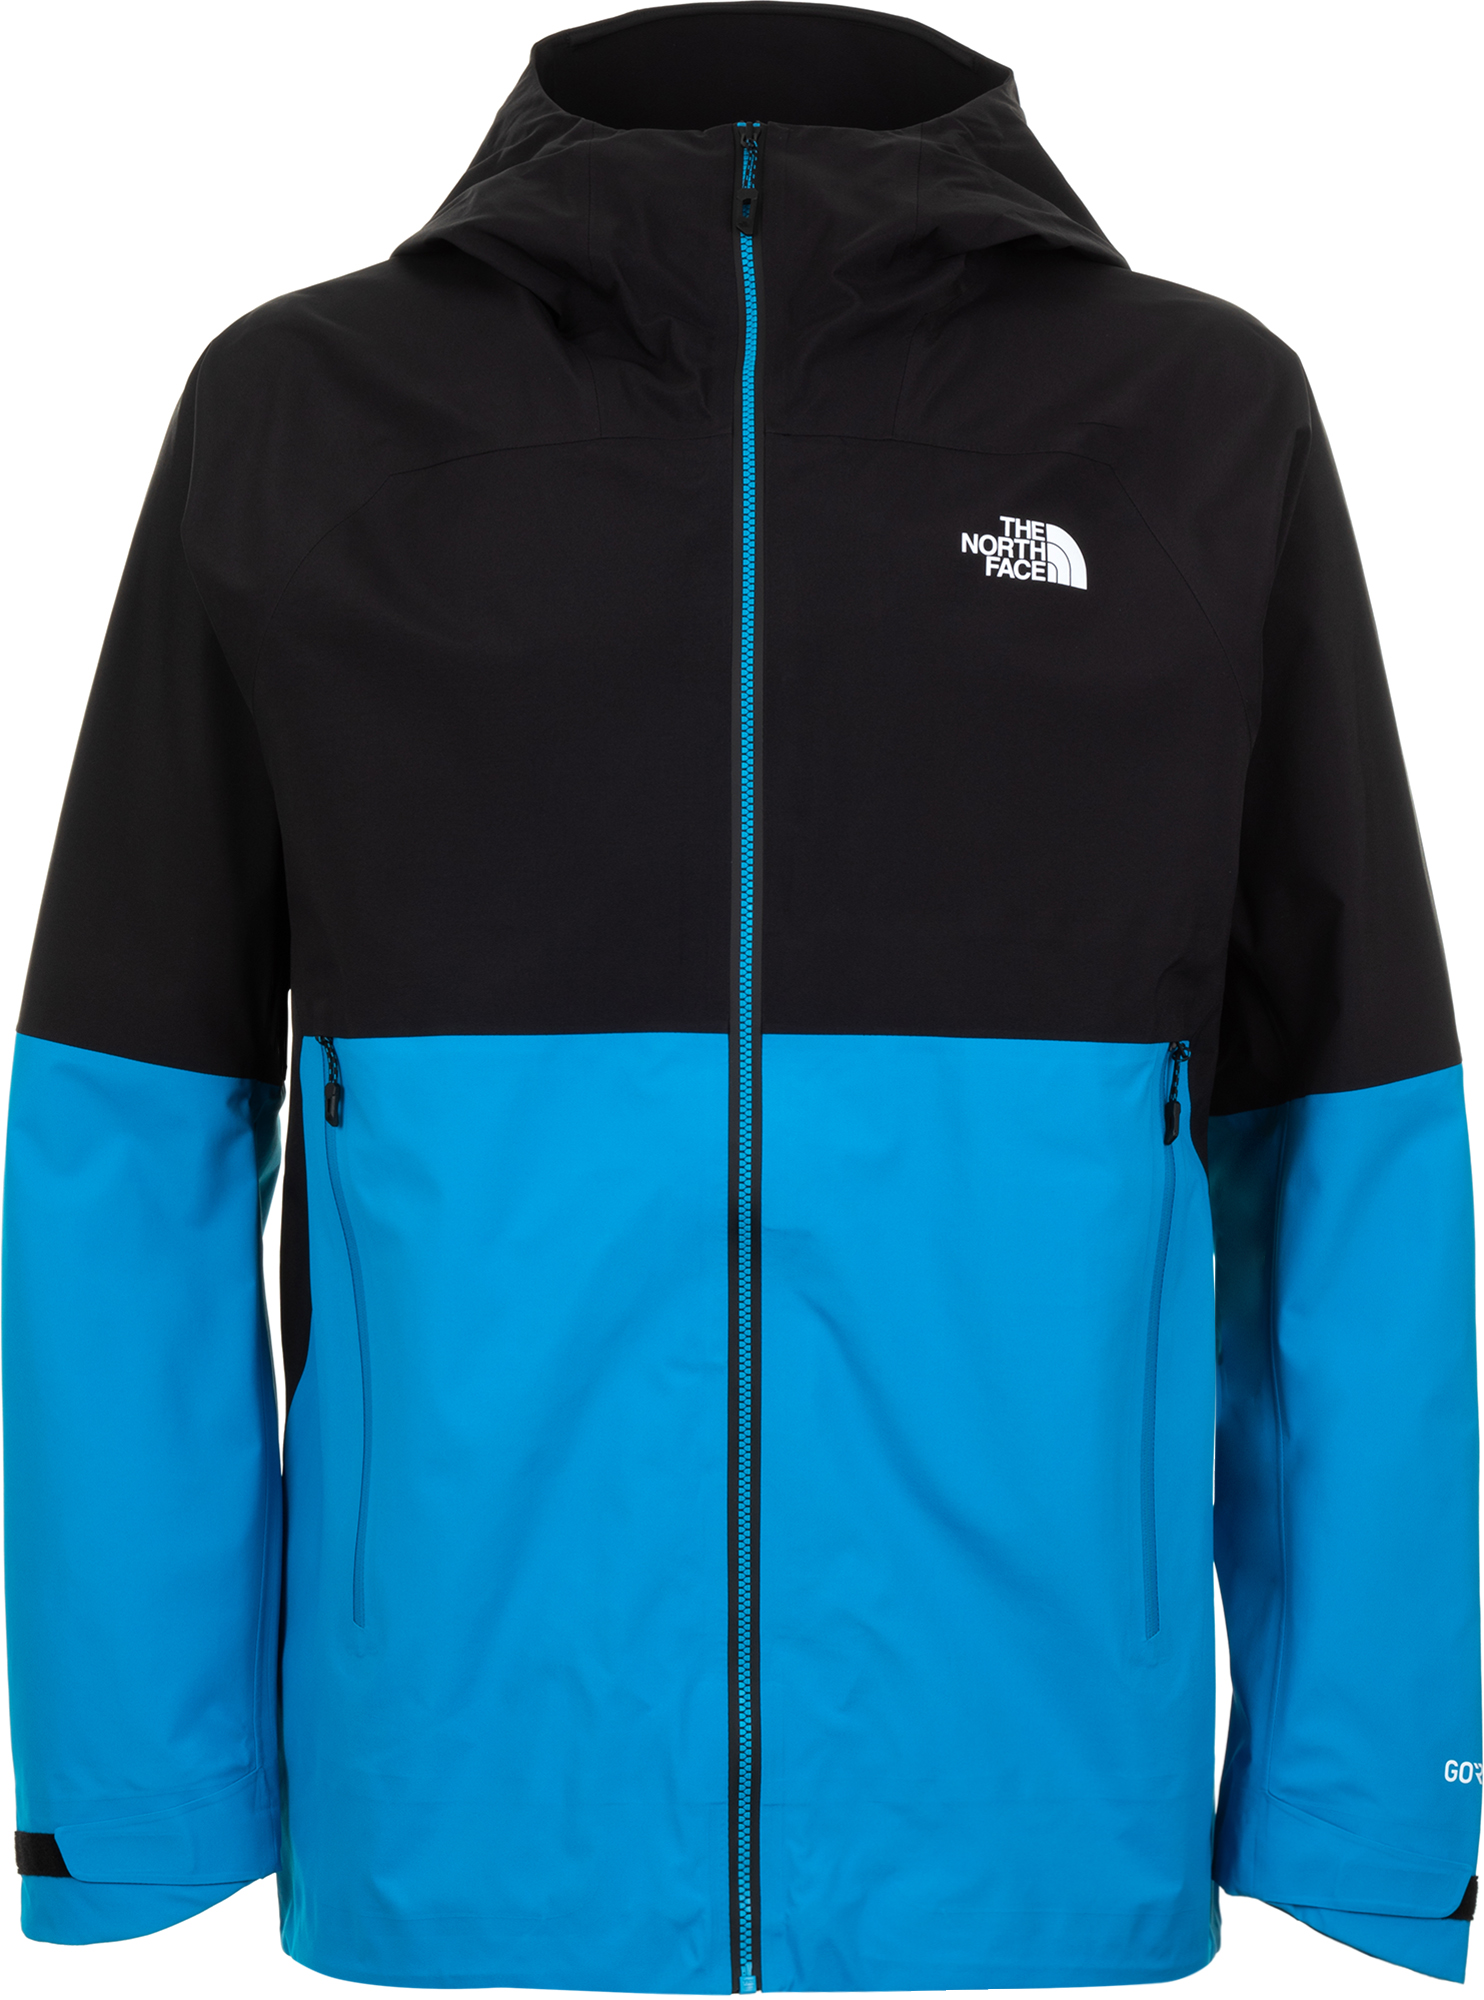 The North Face Ветровка мужская Impendor Shell, размер 52